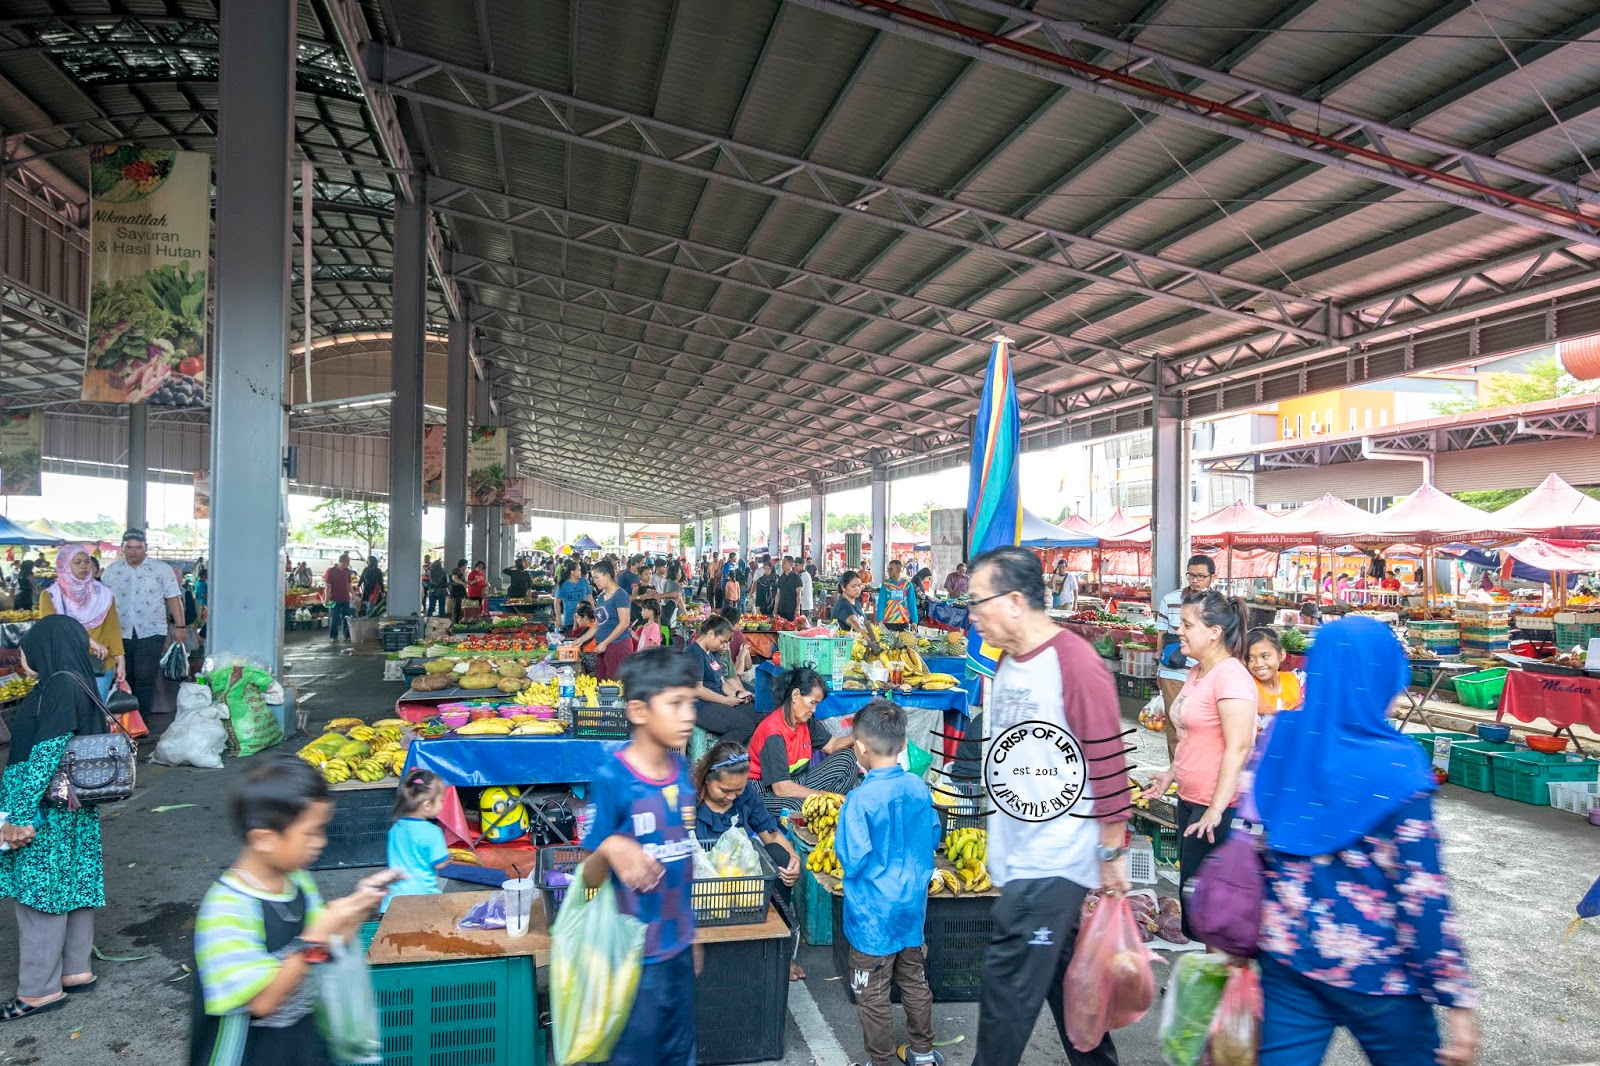 Satok Weekend Market - The Unique Excursion Into a Massive Local Market @ Kuching, Sarawak